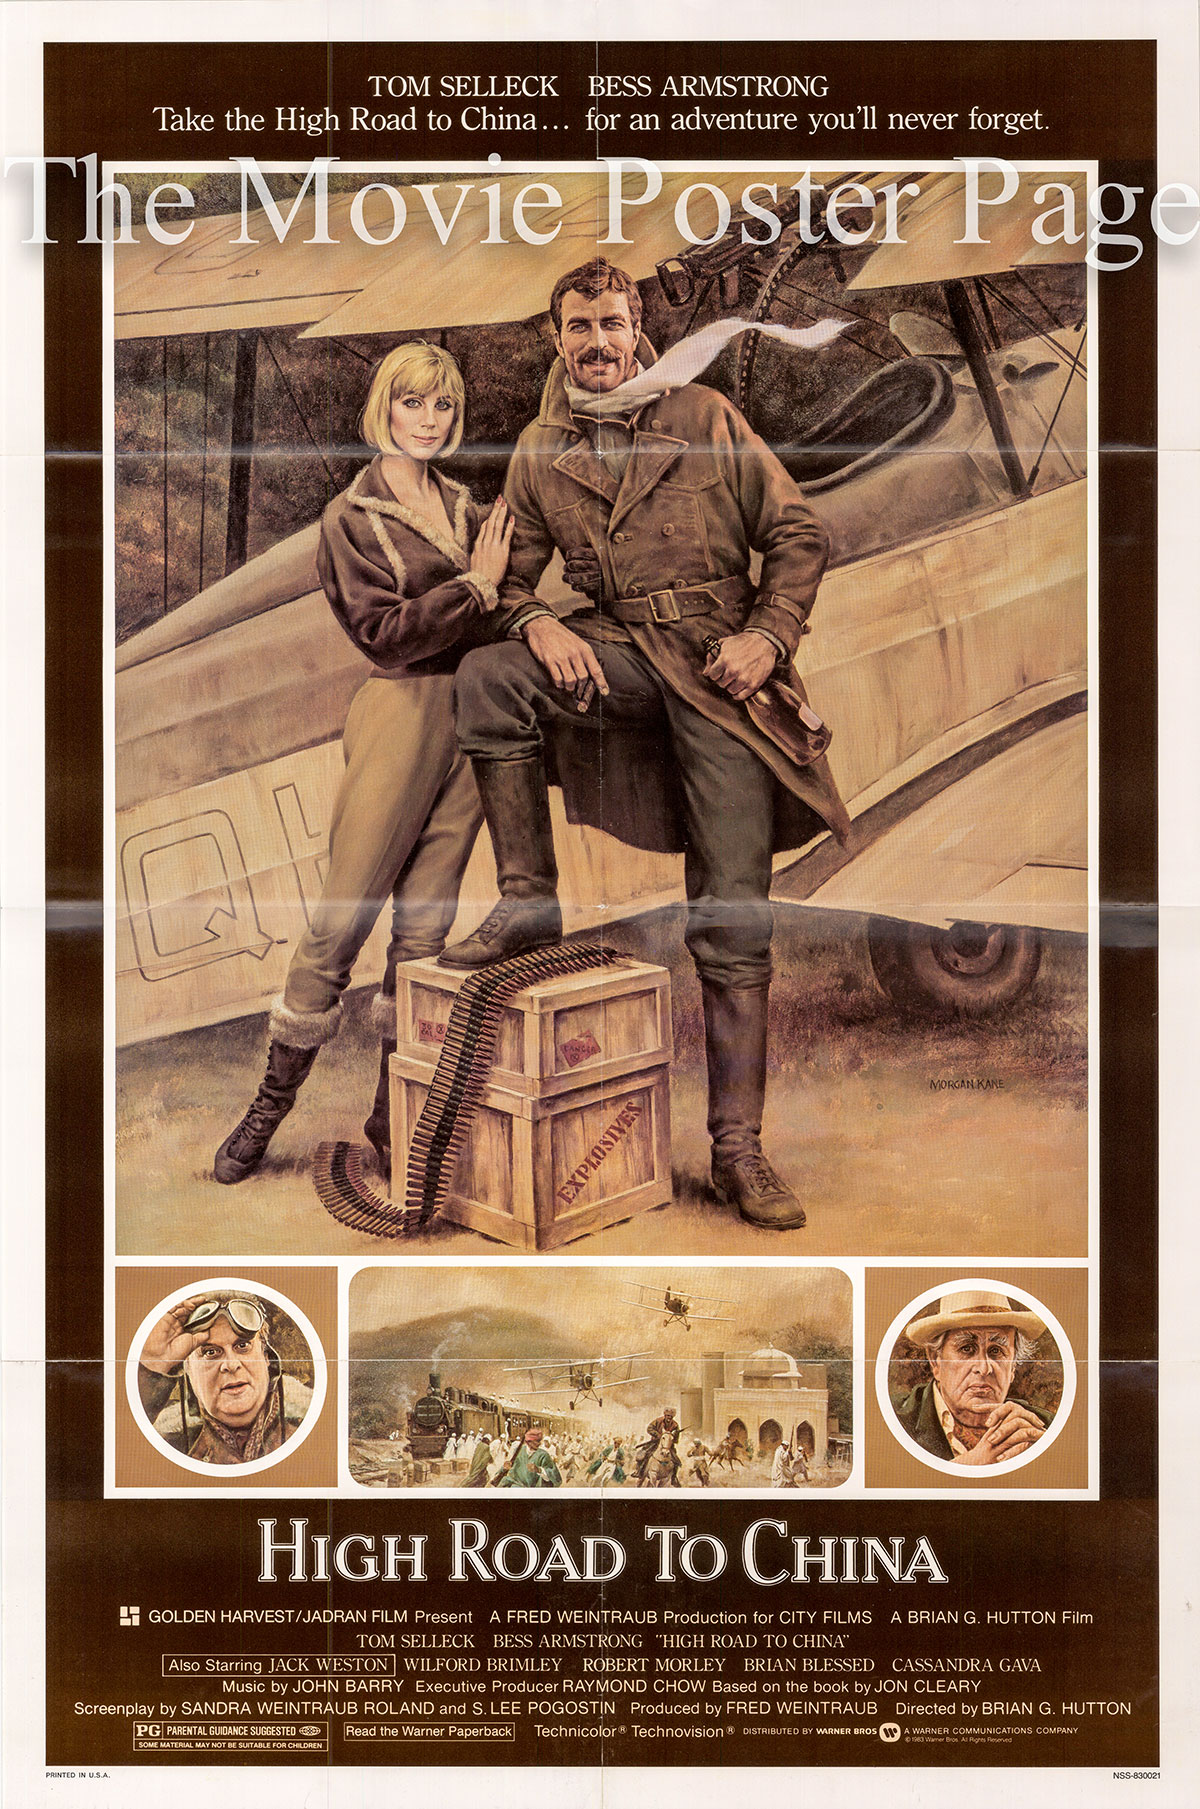 Pictured is a US one-sheet promotional poster for the 1983 Brian G. Hutton film High Road to China starring Tom Selleck.